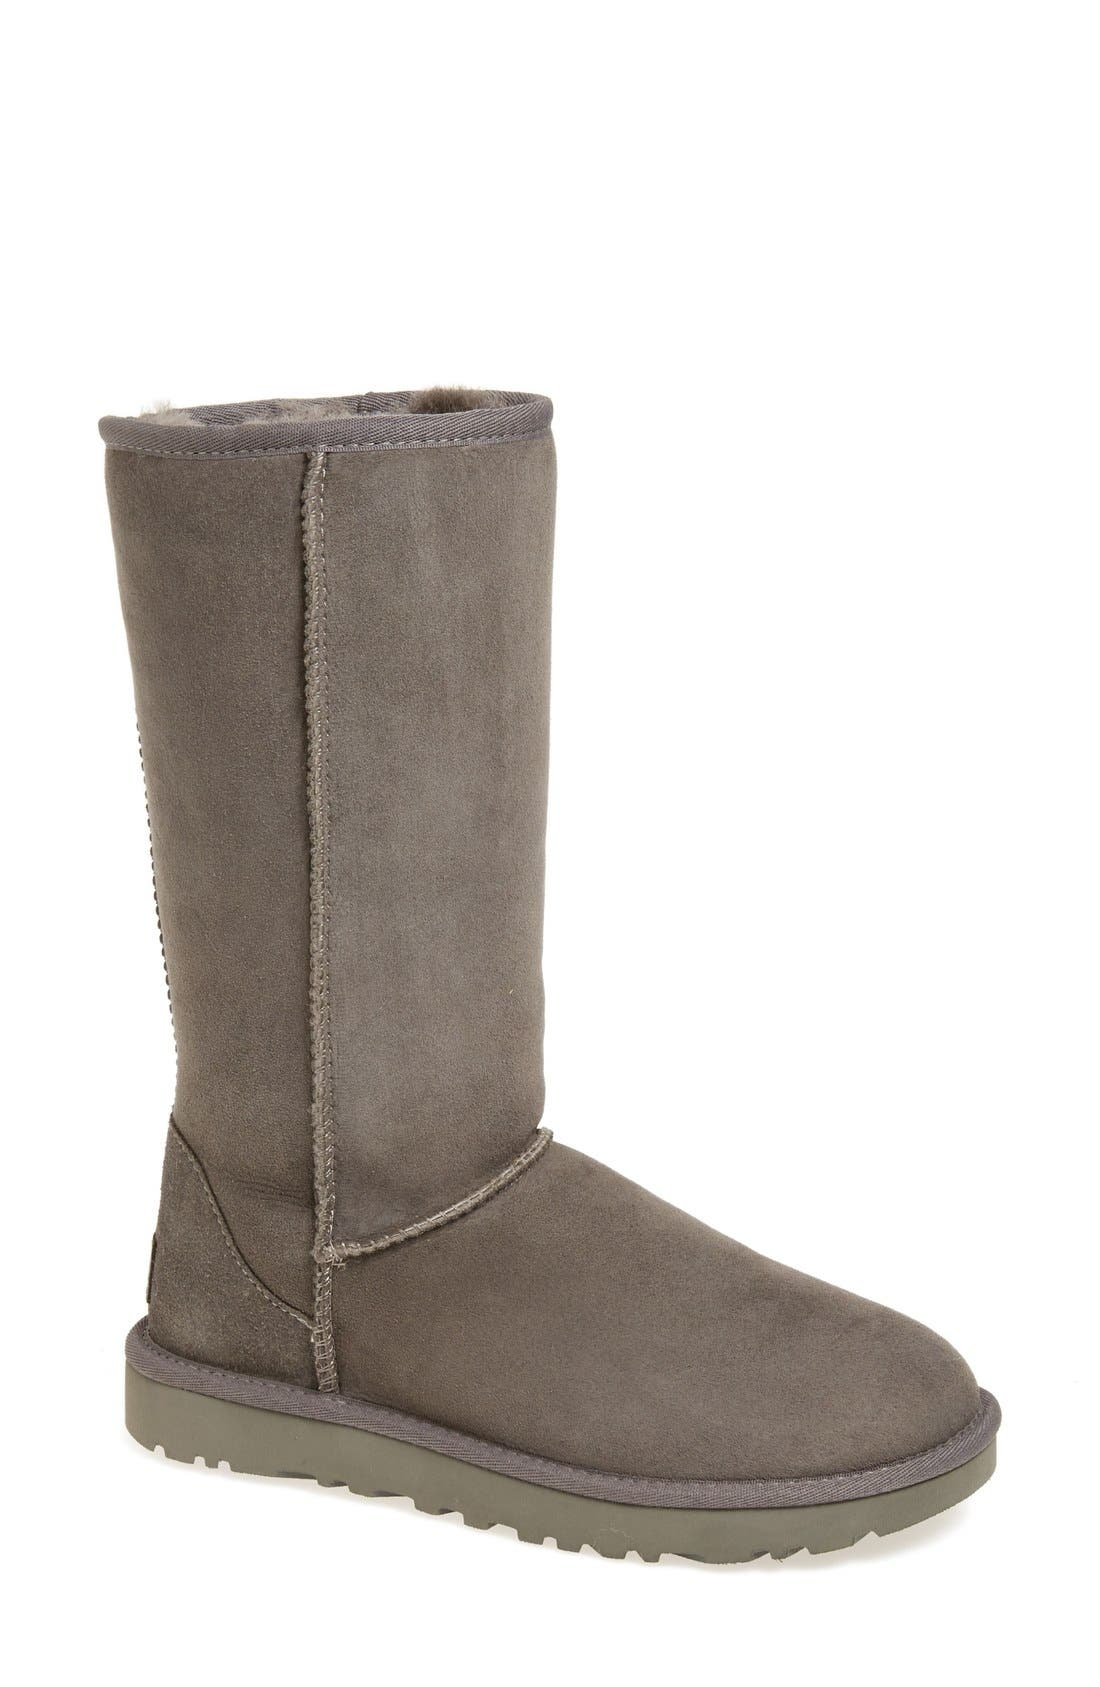 Alternate Image 1 Selected - UGG® 'Classic II' Genuine Shearling Lined Tall Boot (Women)